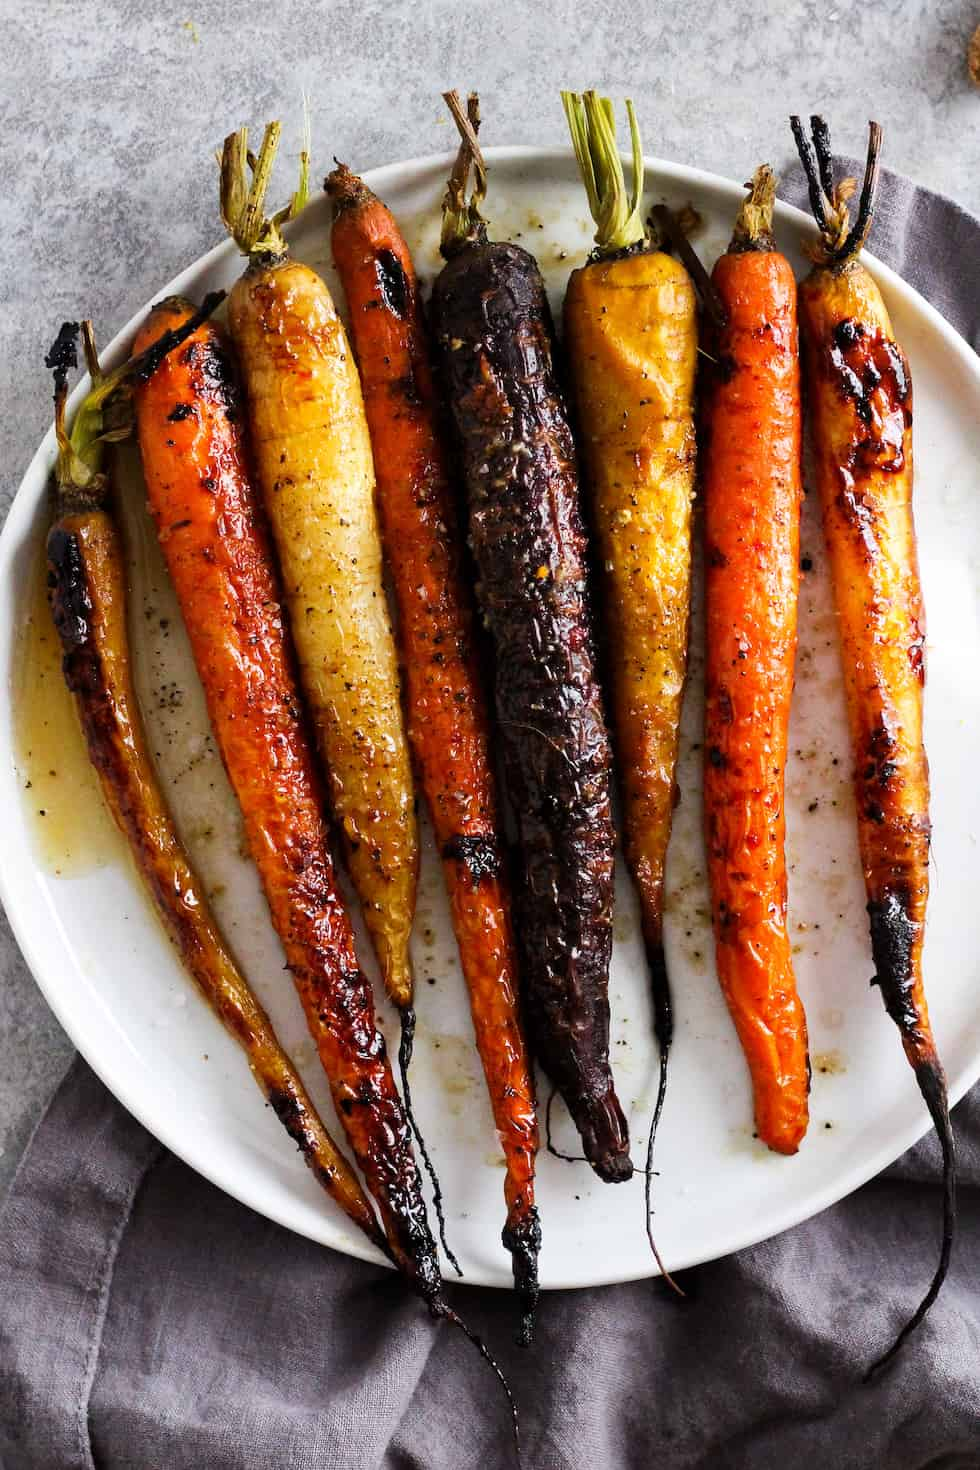 Roasted rainbow carrots on white plate